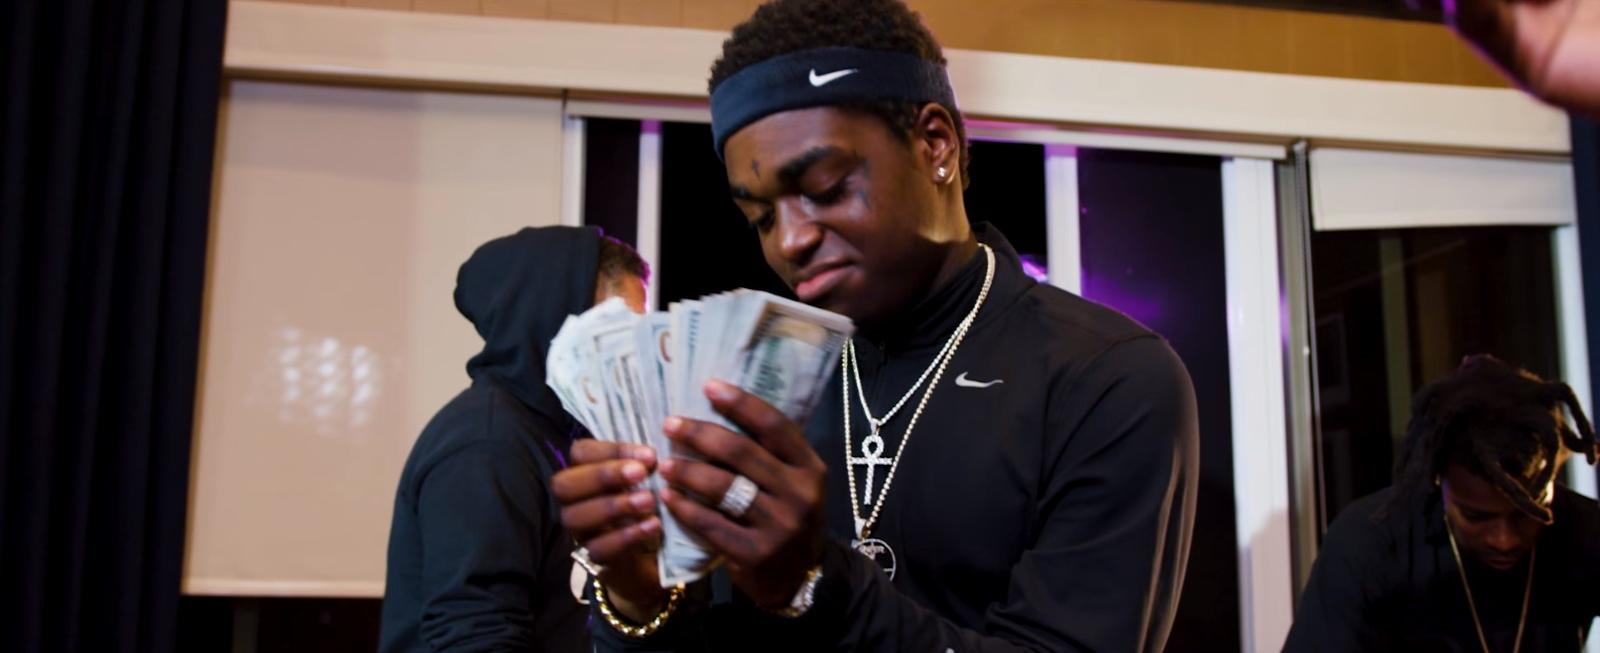 Nike Jacket And Headband - Kodak Black - First Day Out Official Music Video Product Placement